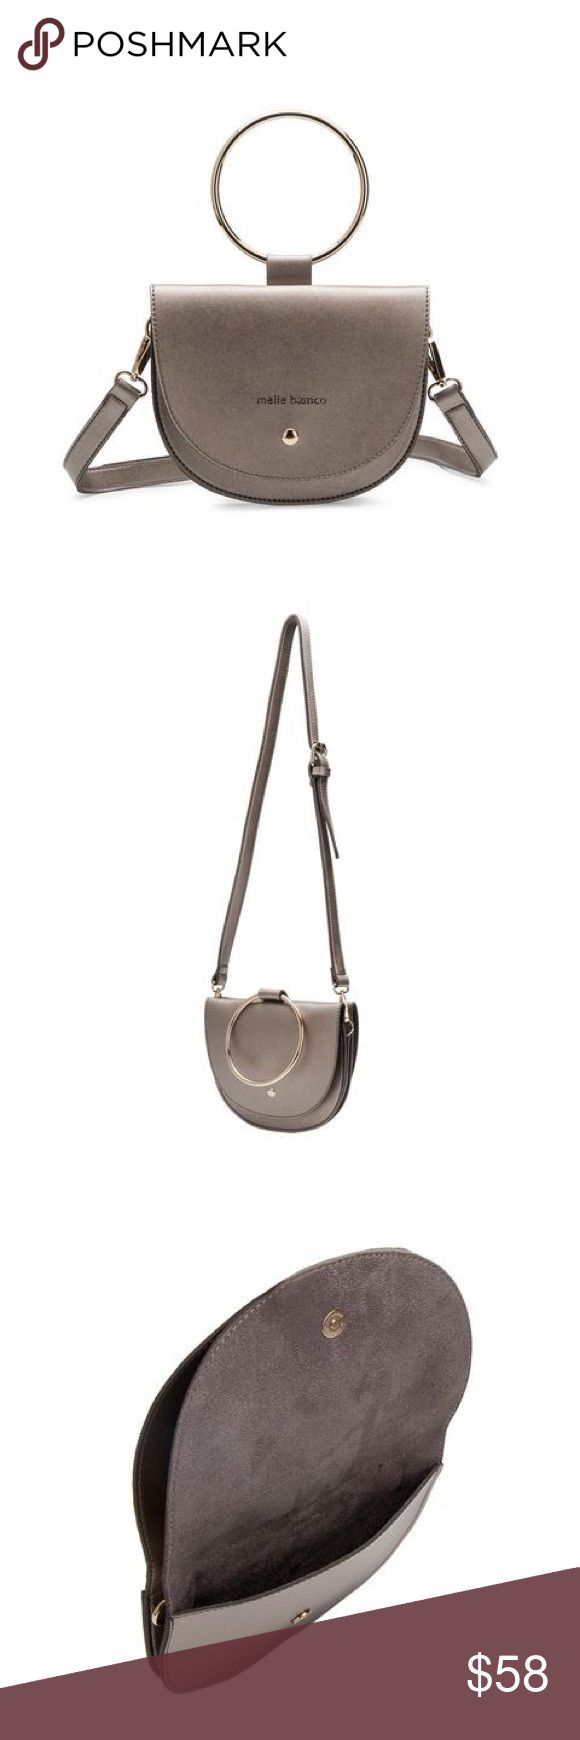 "Premium vegan leather handbag Premium vegan leather Melie Bianco crossbody handbag.  Front flap magnetic clasp closure. Removebable crossbody strap included - wear it by the ring only if wanted! Fits up to an iPhone 7 plus. Dimensions 8"" L x 5"" W x 6.2"" H. 2 colors - GREY and GOLD. Melie Bianco Bags Crossbody Bags"